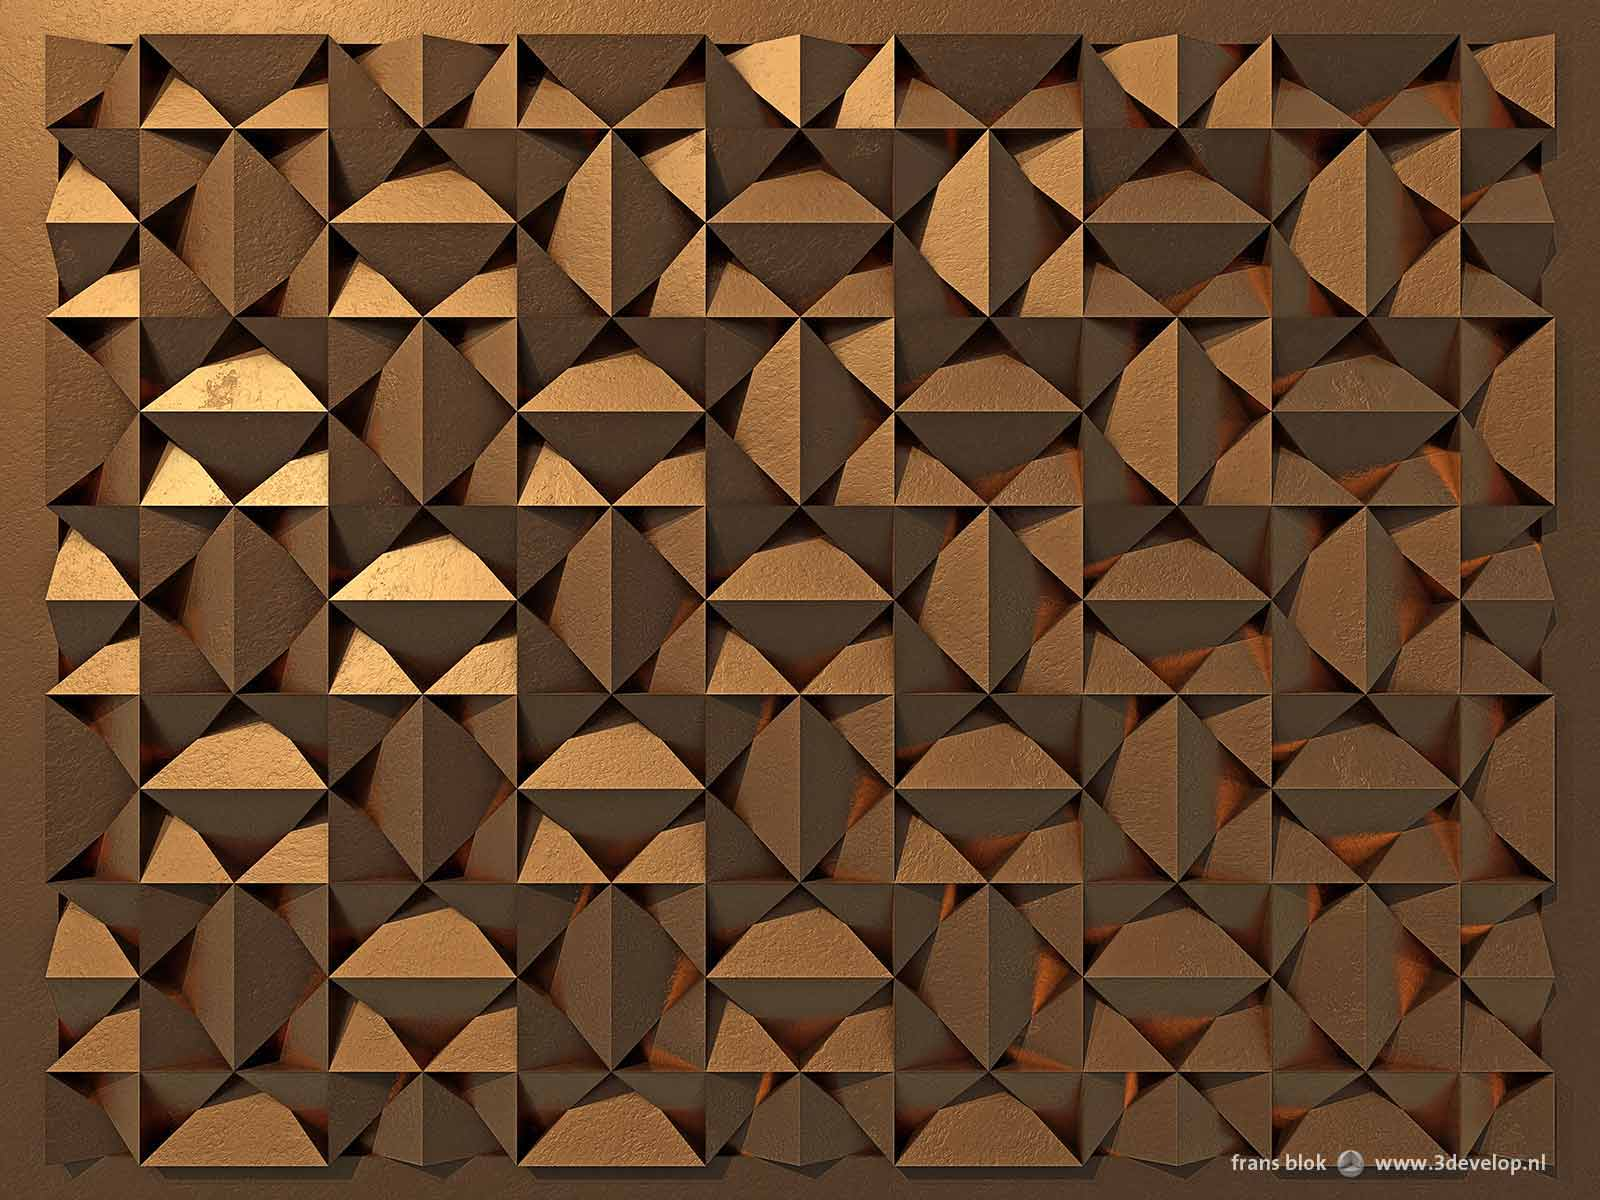 A virtual relief, creating the illusion of depth on a flat surface, with a pattern of squares and triangles, done in copper.